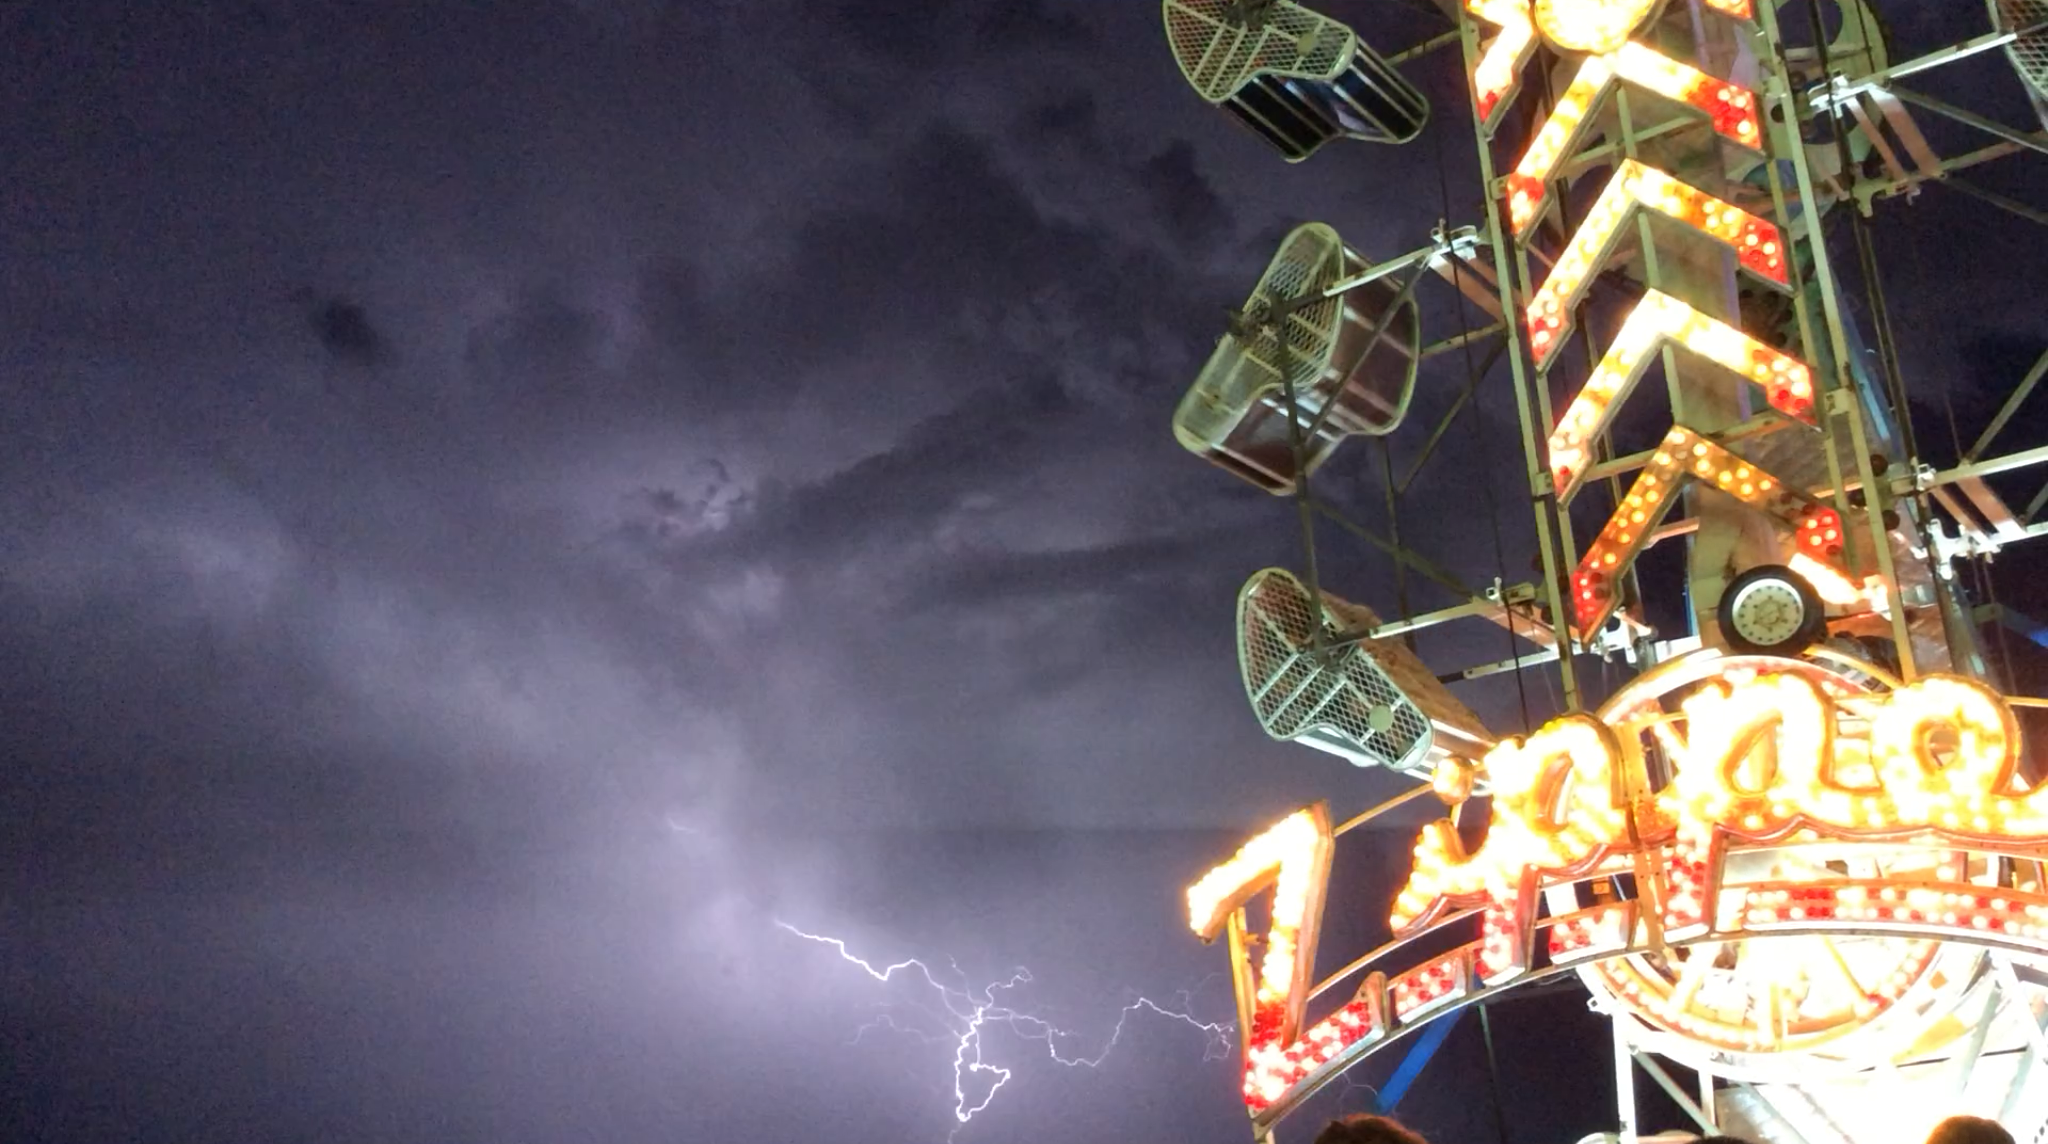 Lightning threatens the fun, but the Washington County Fair goes on. Hurricane, Utah, Aug. 10, 2016 | Photo by Cami Cox Jim, St. George News